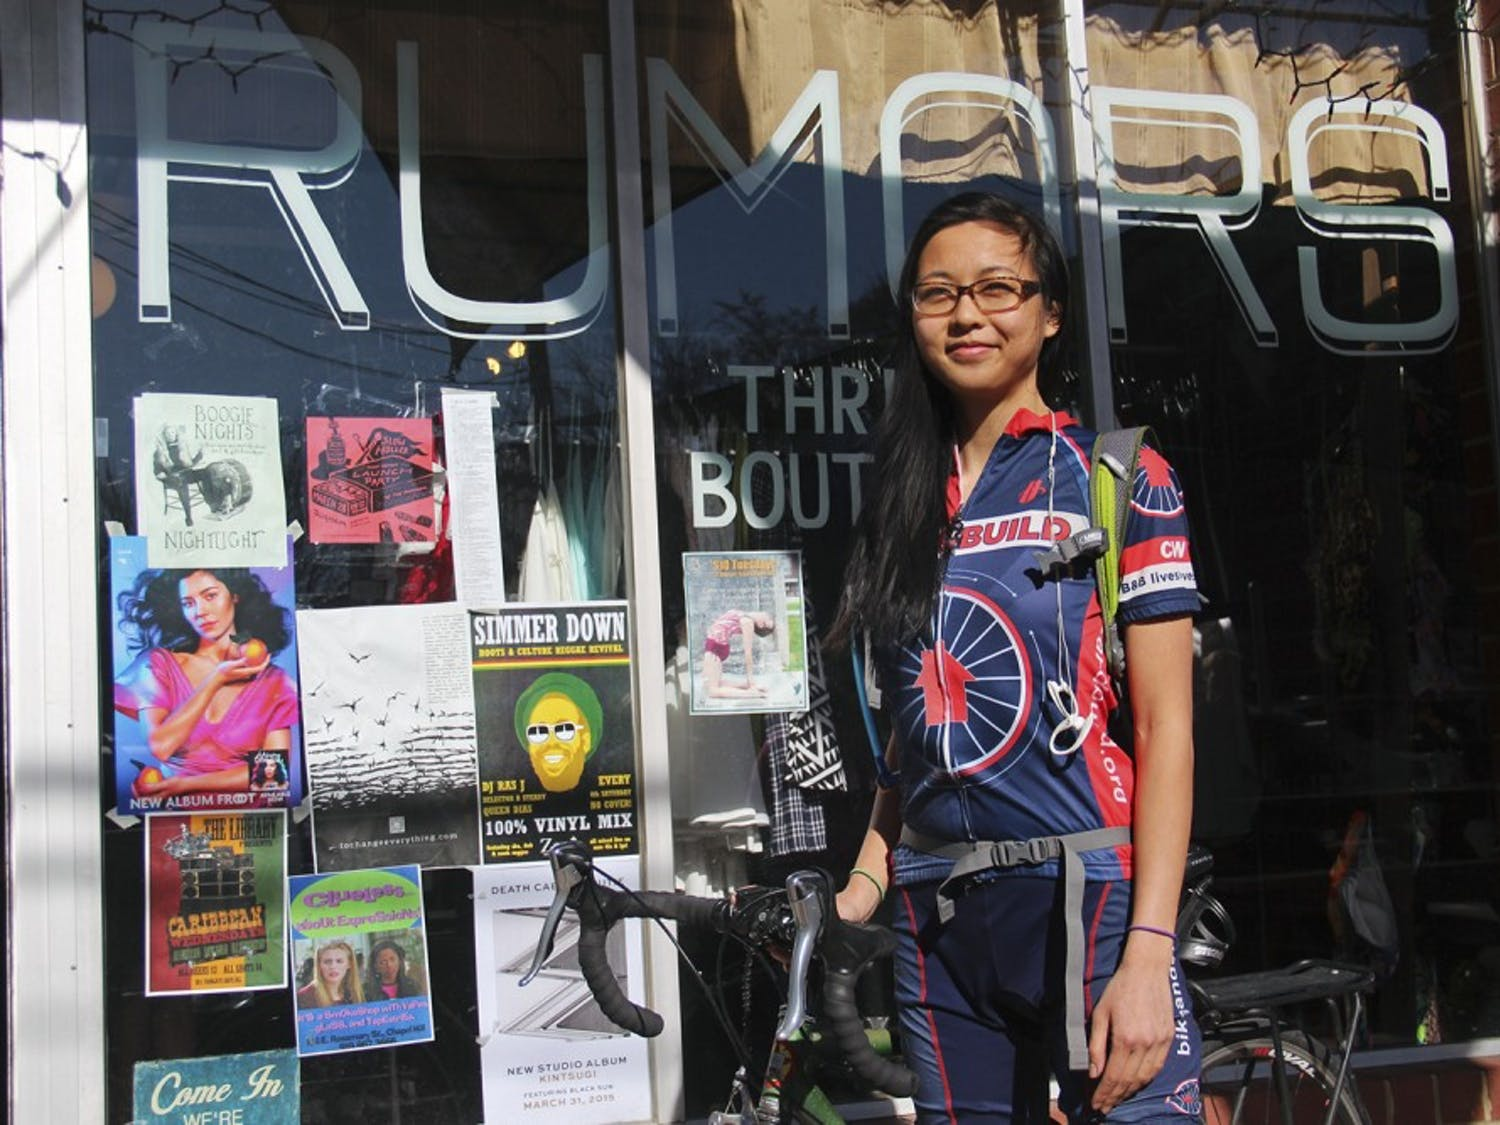 UNC student Alicia Chen will be holding a benefit night at Rumors on Wednesday in order to raise money for her Bike & Build trip. Chen hopes a portion of the money raised will go back to the Carrboro community.